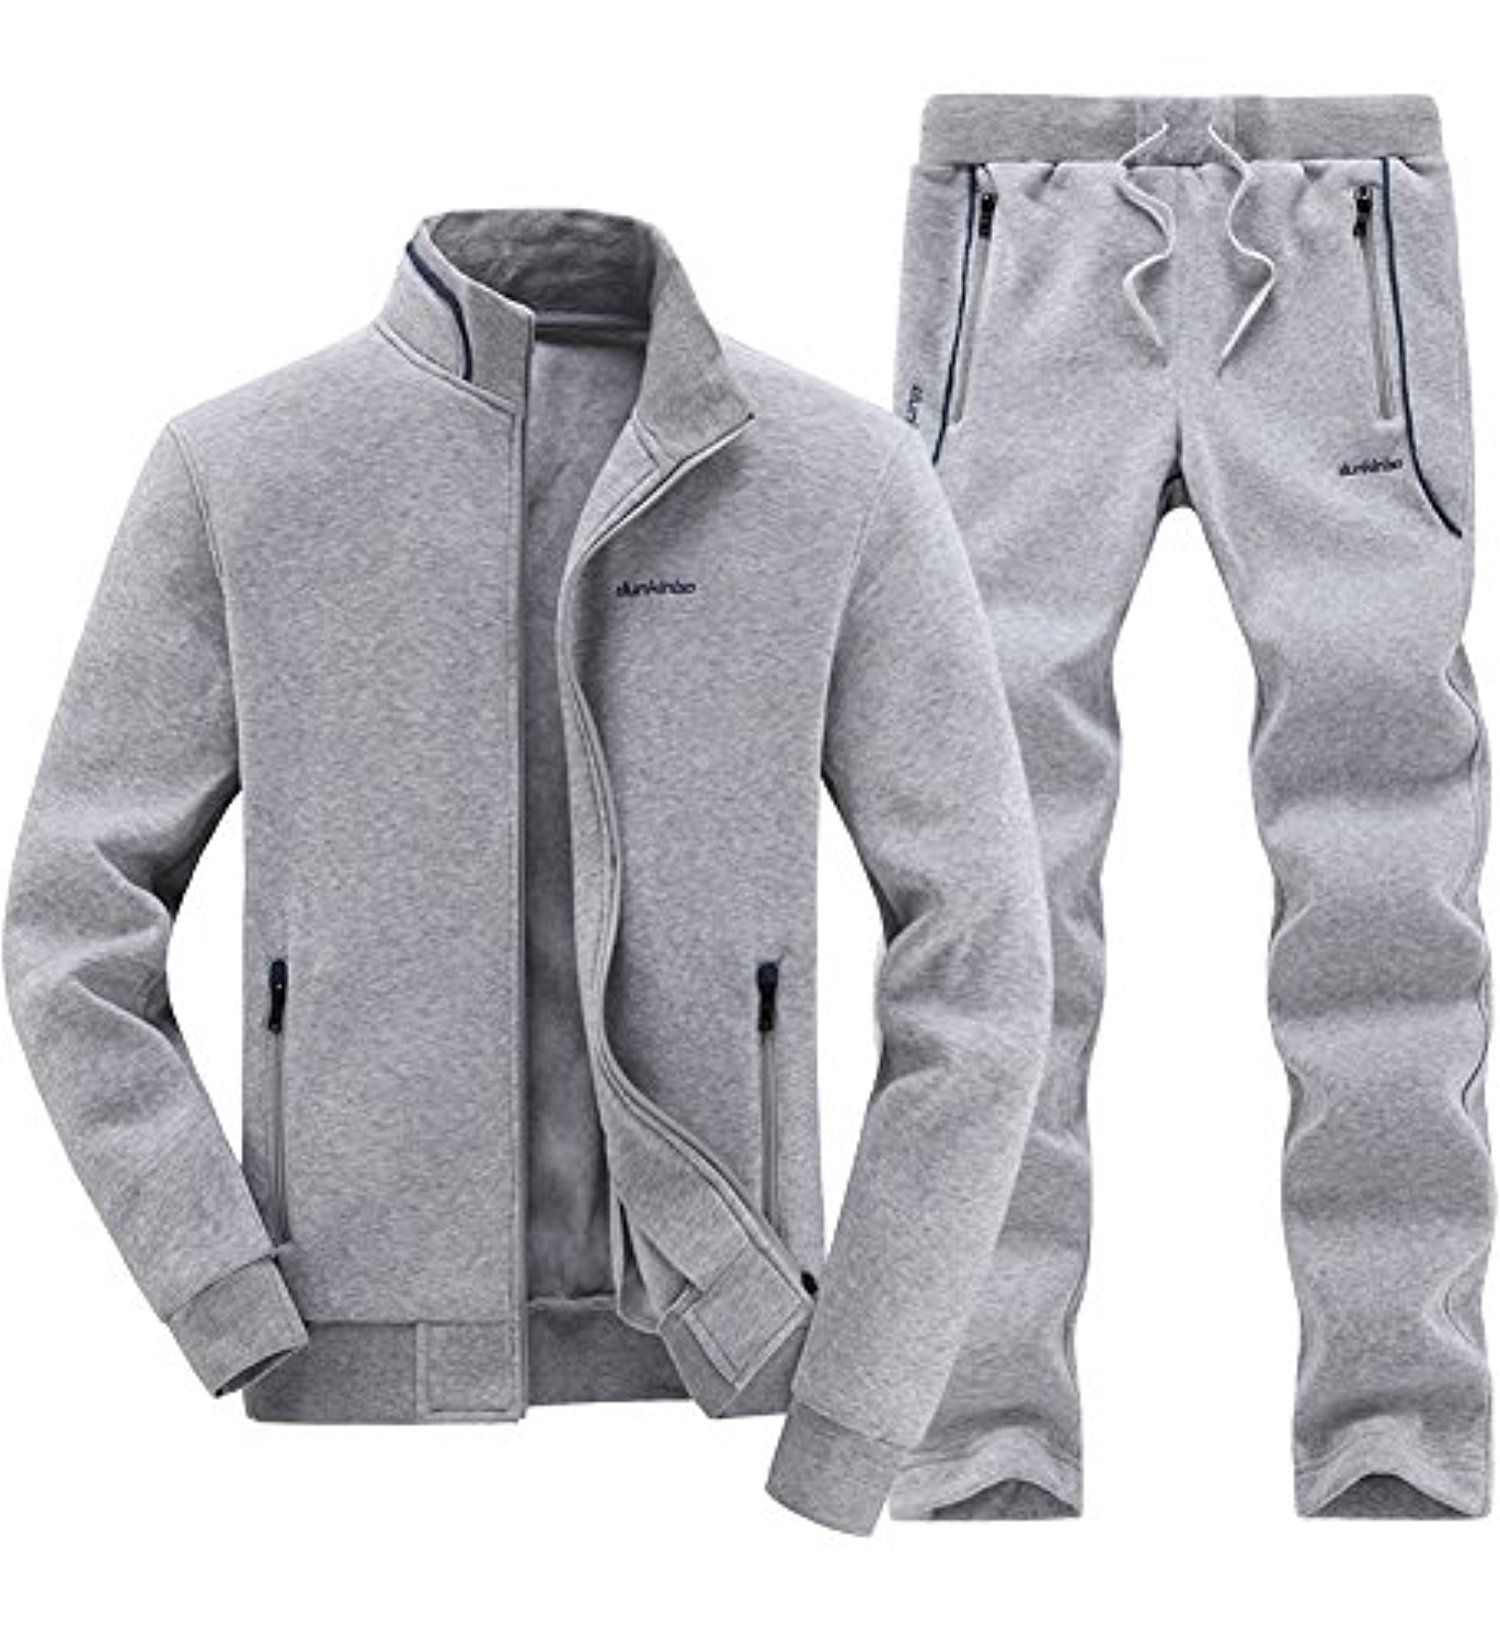 f6ed58b41ca Mens Tracksuit Classic Autumn Winter Warm Up Jogging Suit Gray XL --  Awesome products selected by Anna Churchill